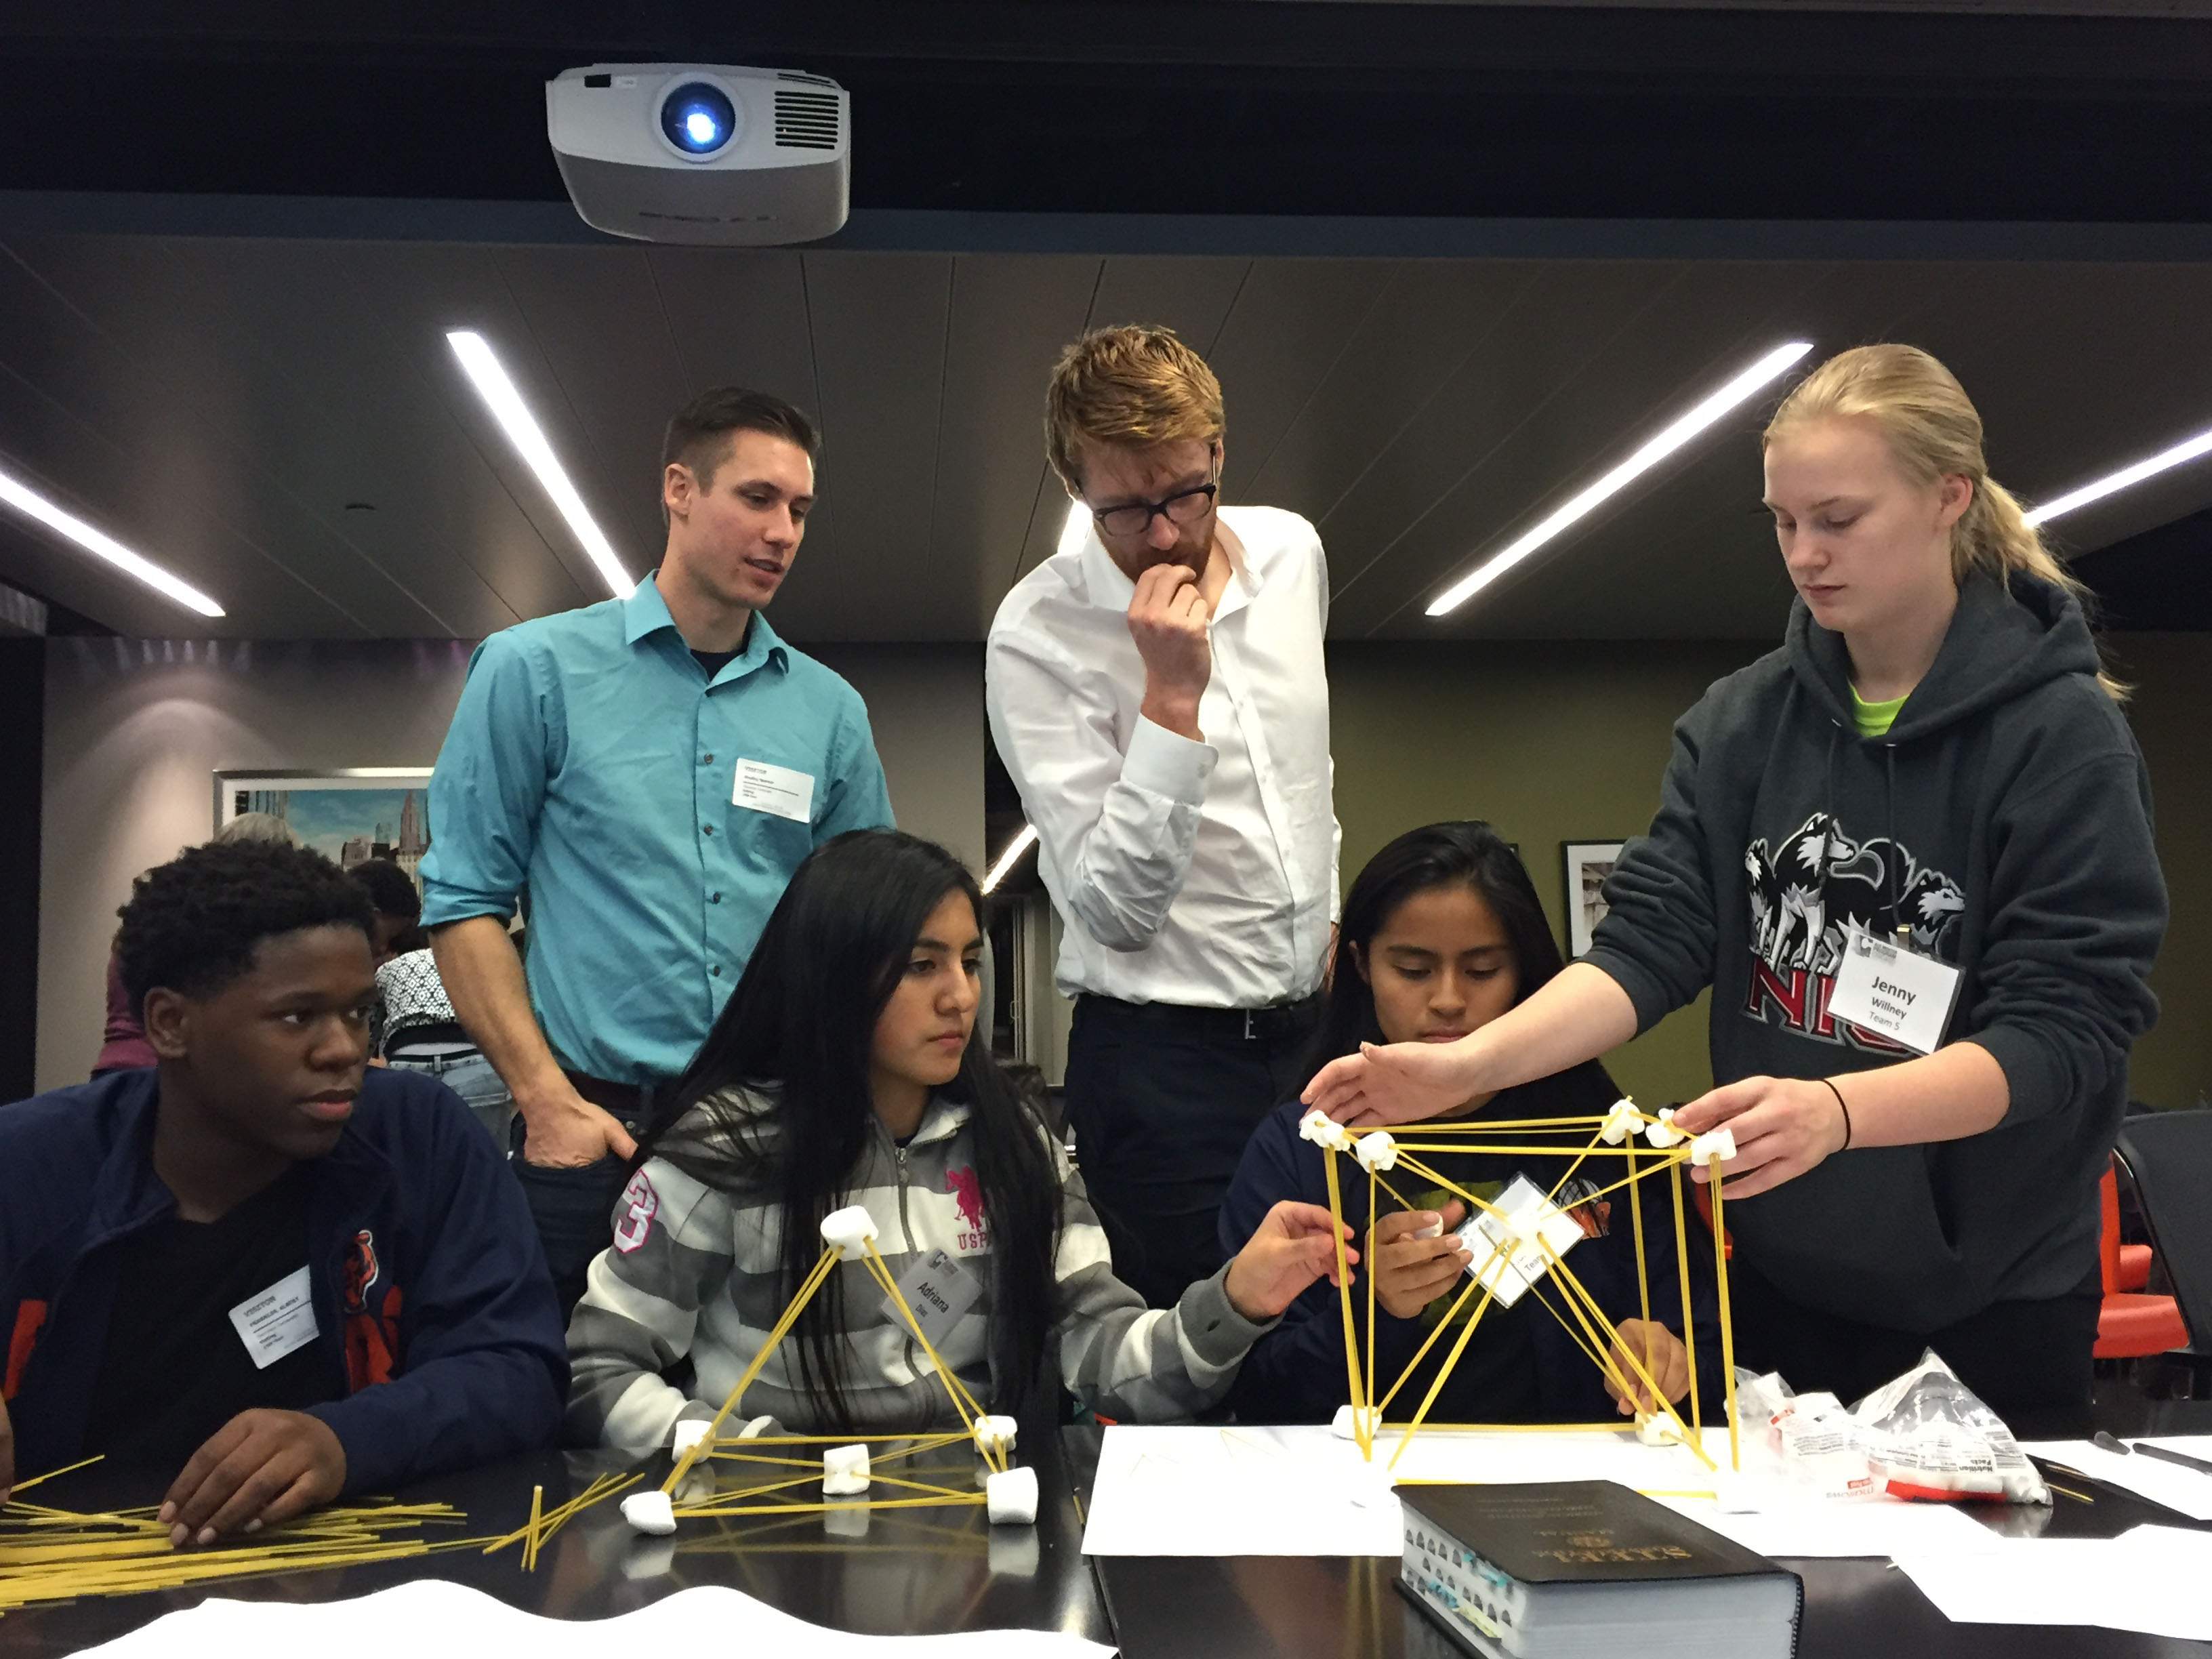 Team 5 Marshmallow Towers